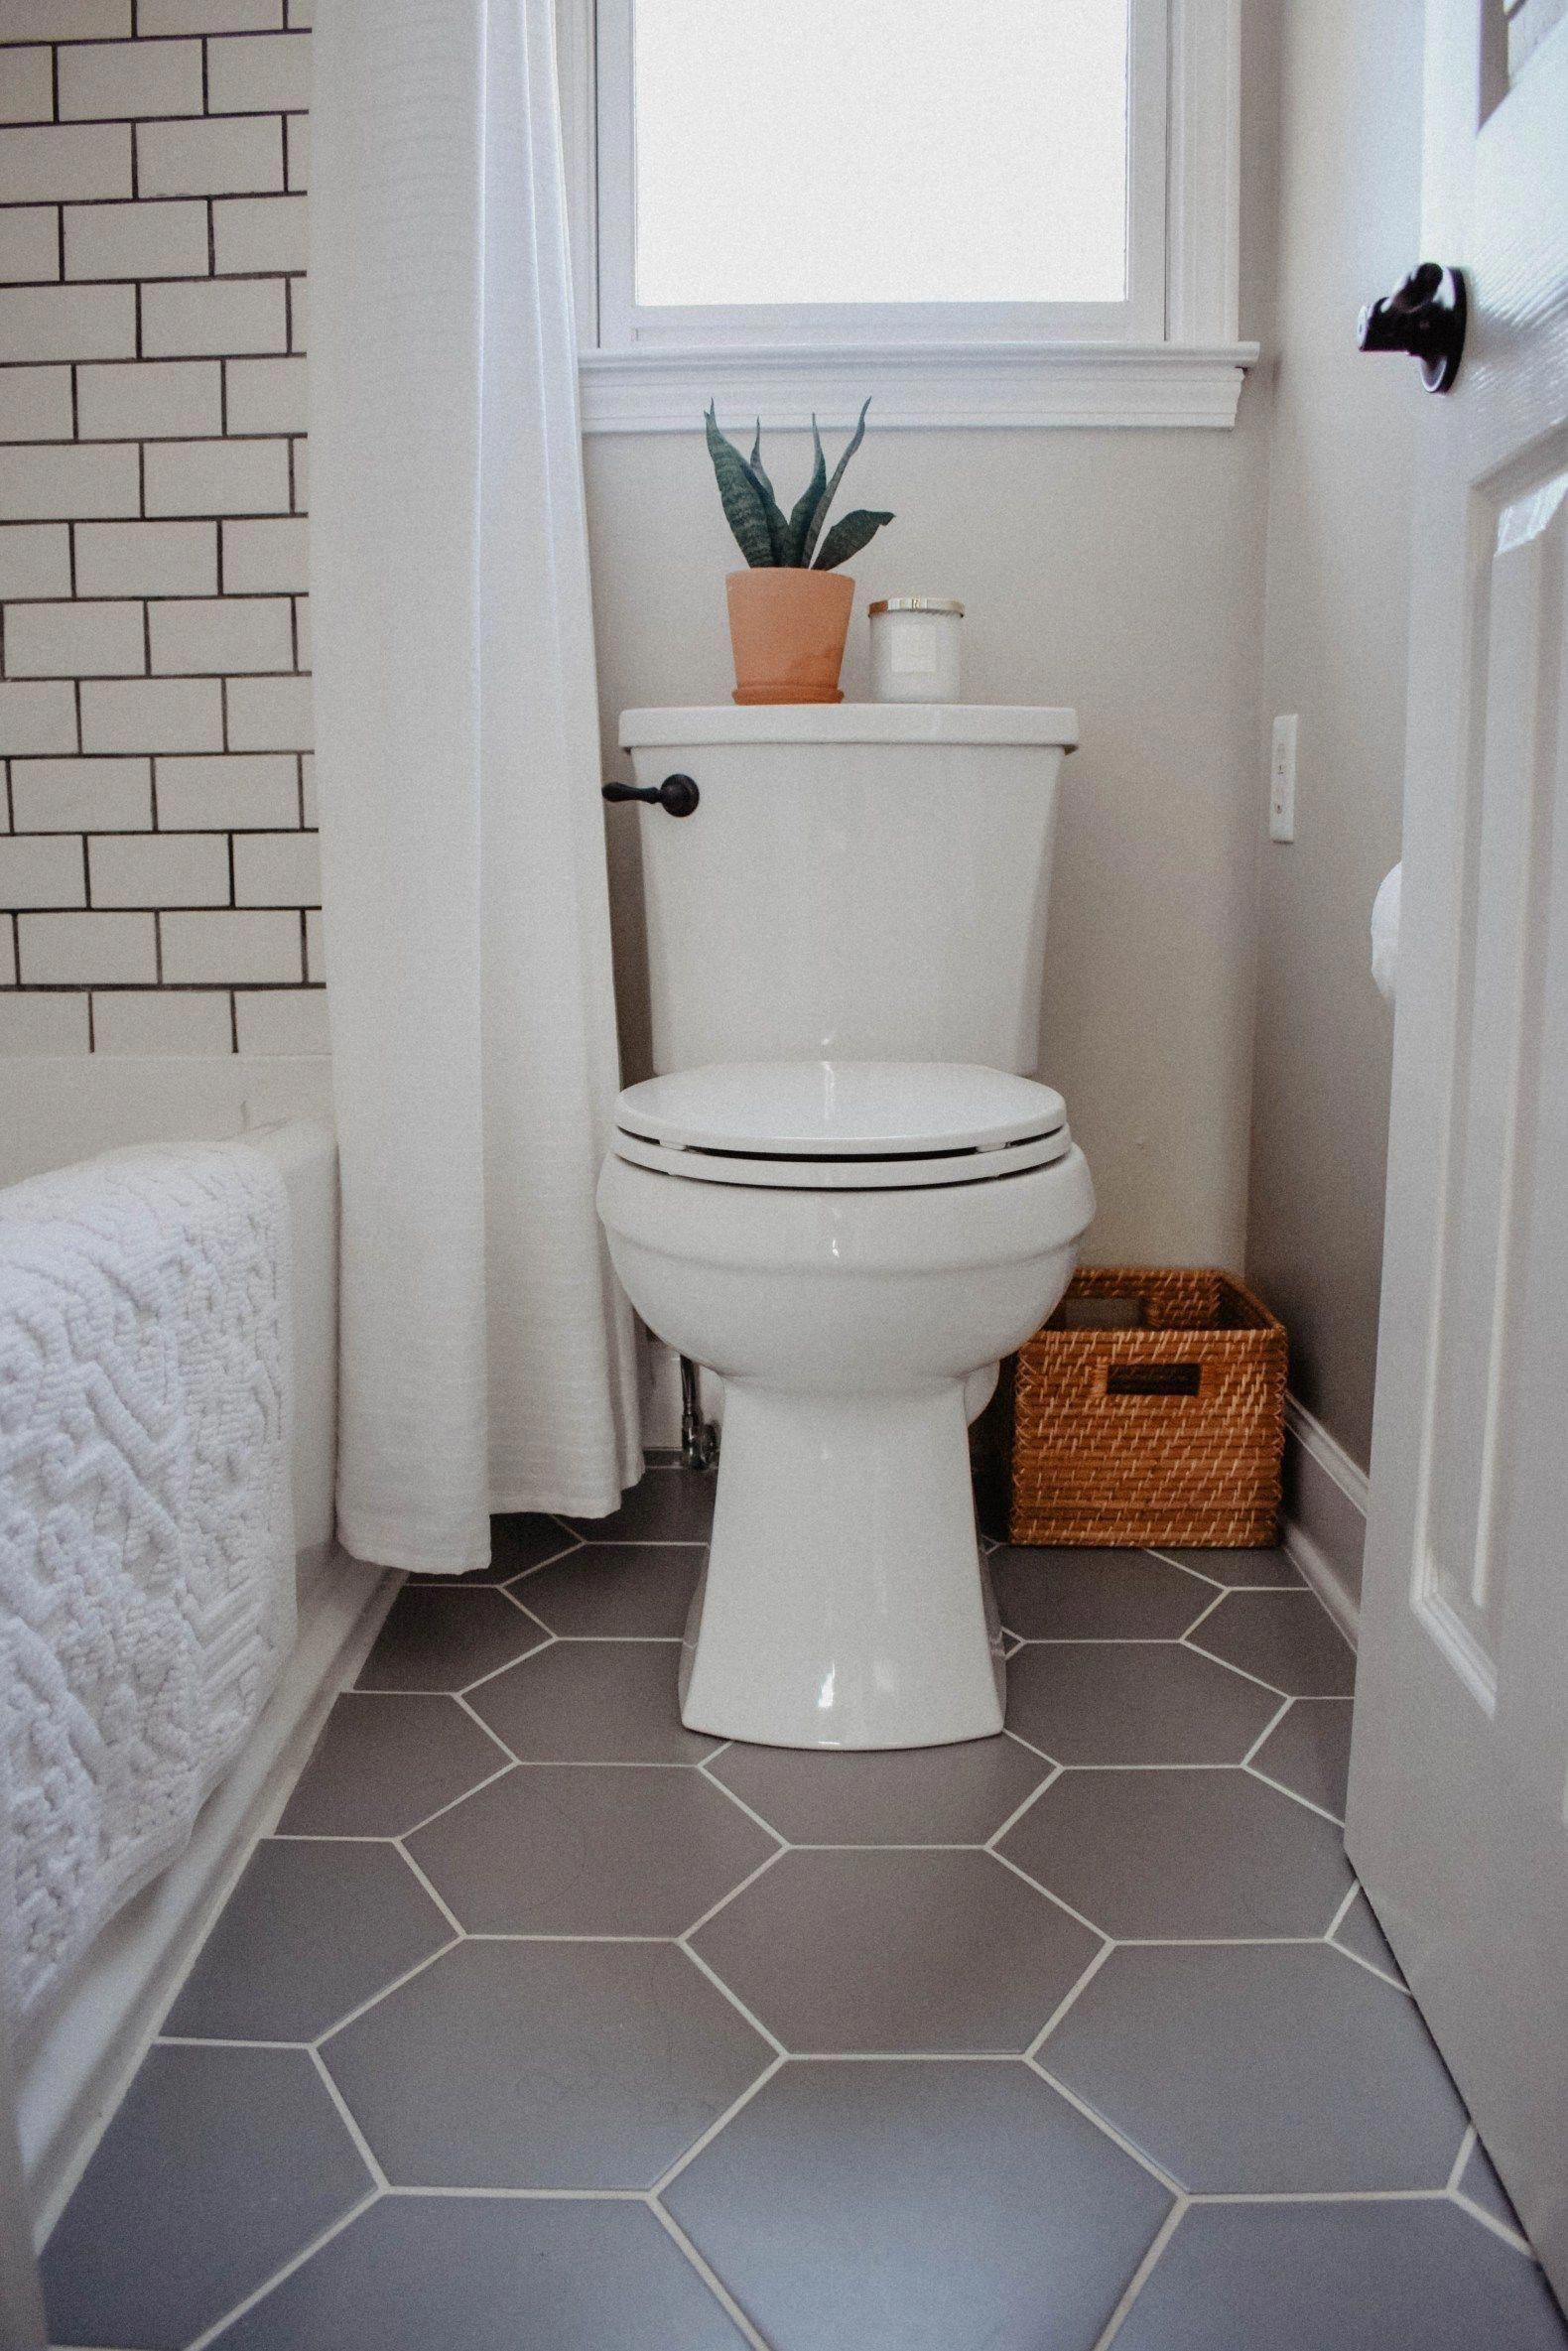 Bathroom Renovations Is Your House In Requirement Of A Bathroom Remodel Provide Your Bathroom Modern Boho Bathroom Small Bathroom Remodel Bathrooms Remodel